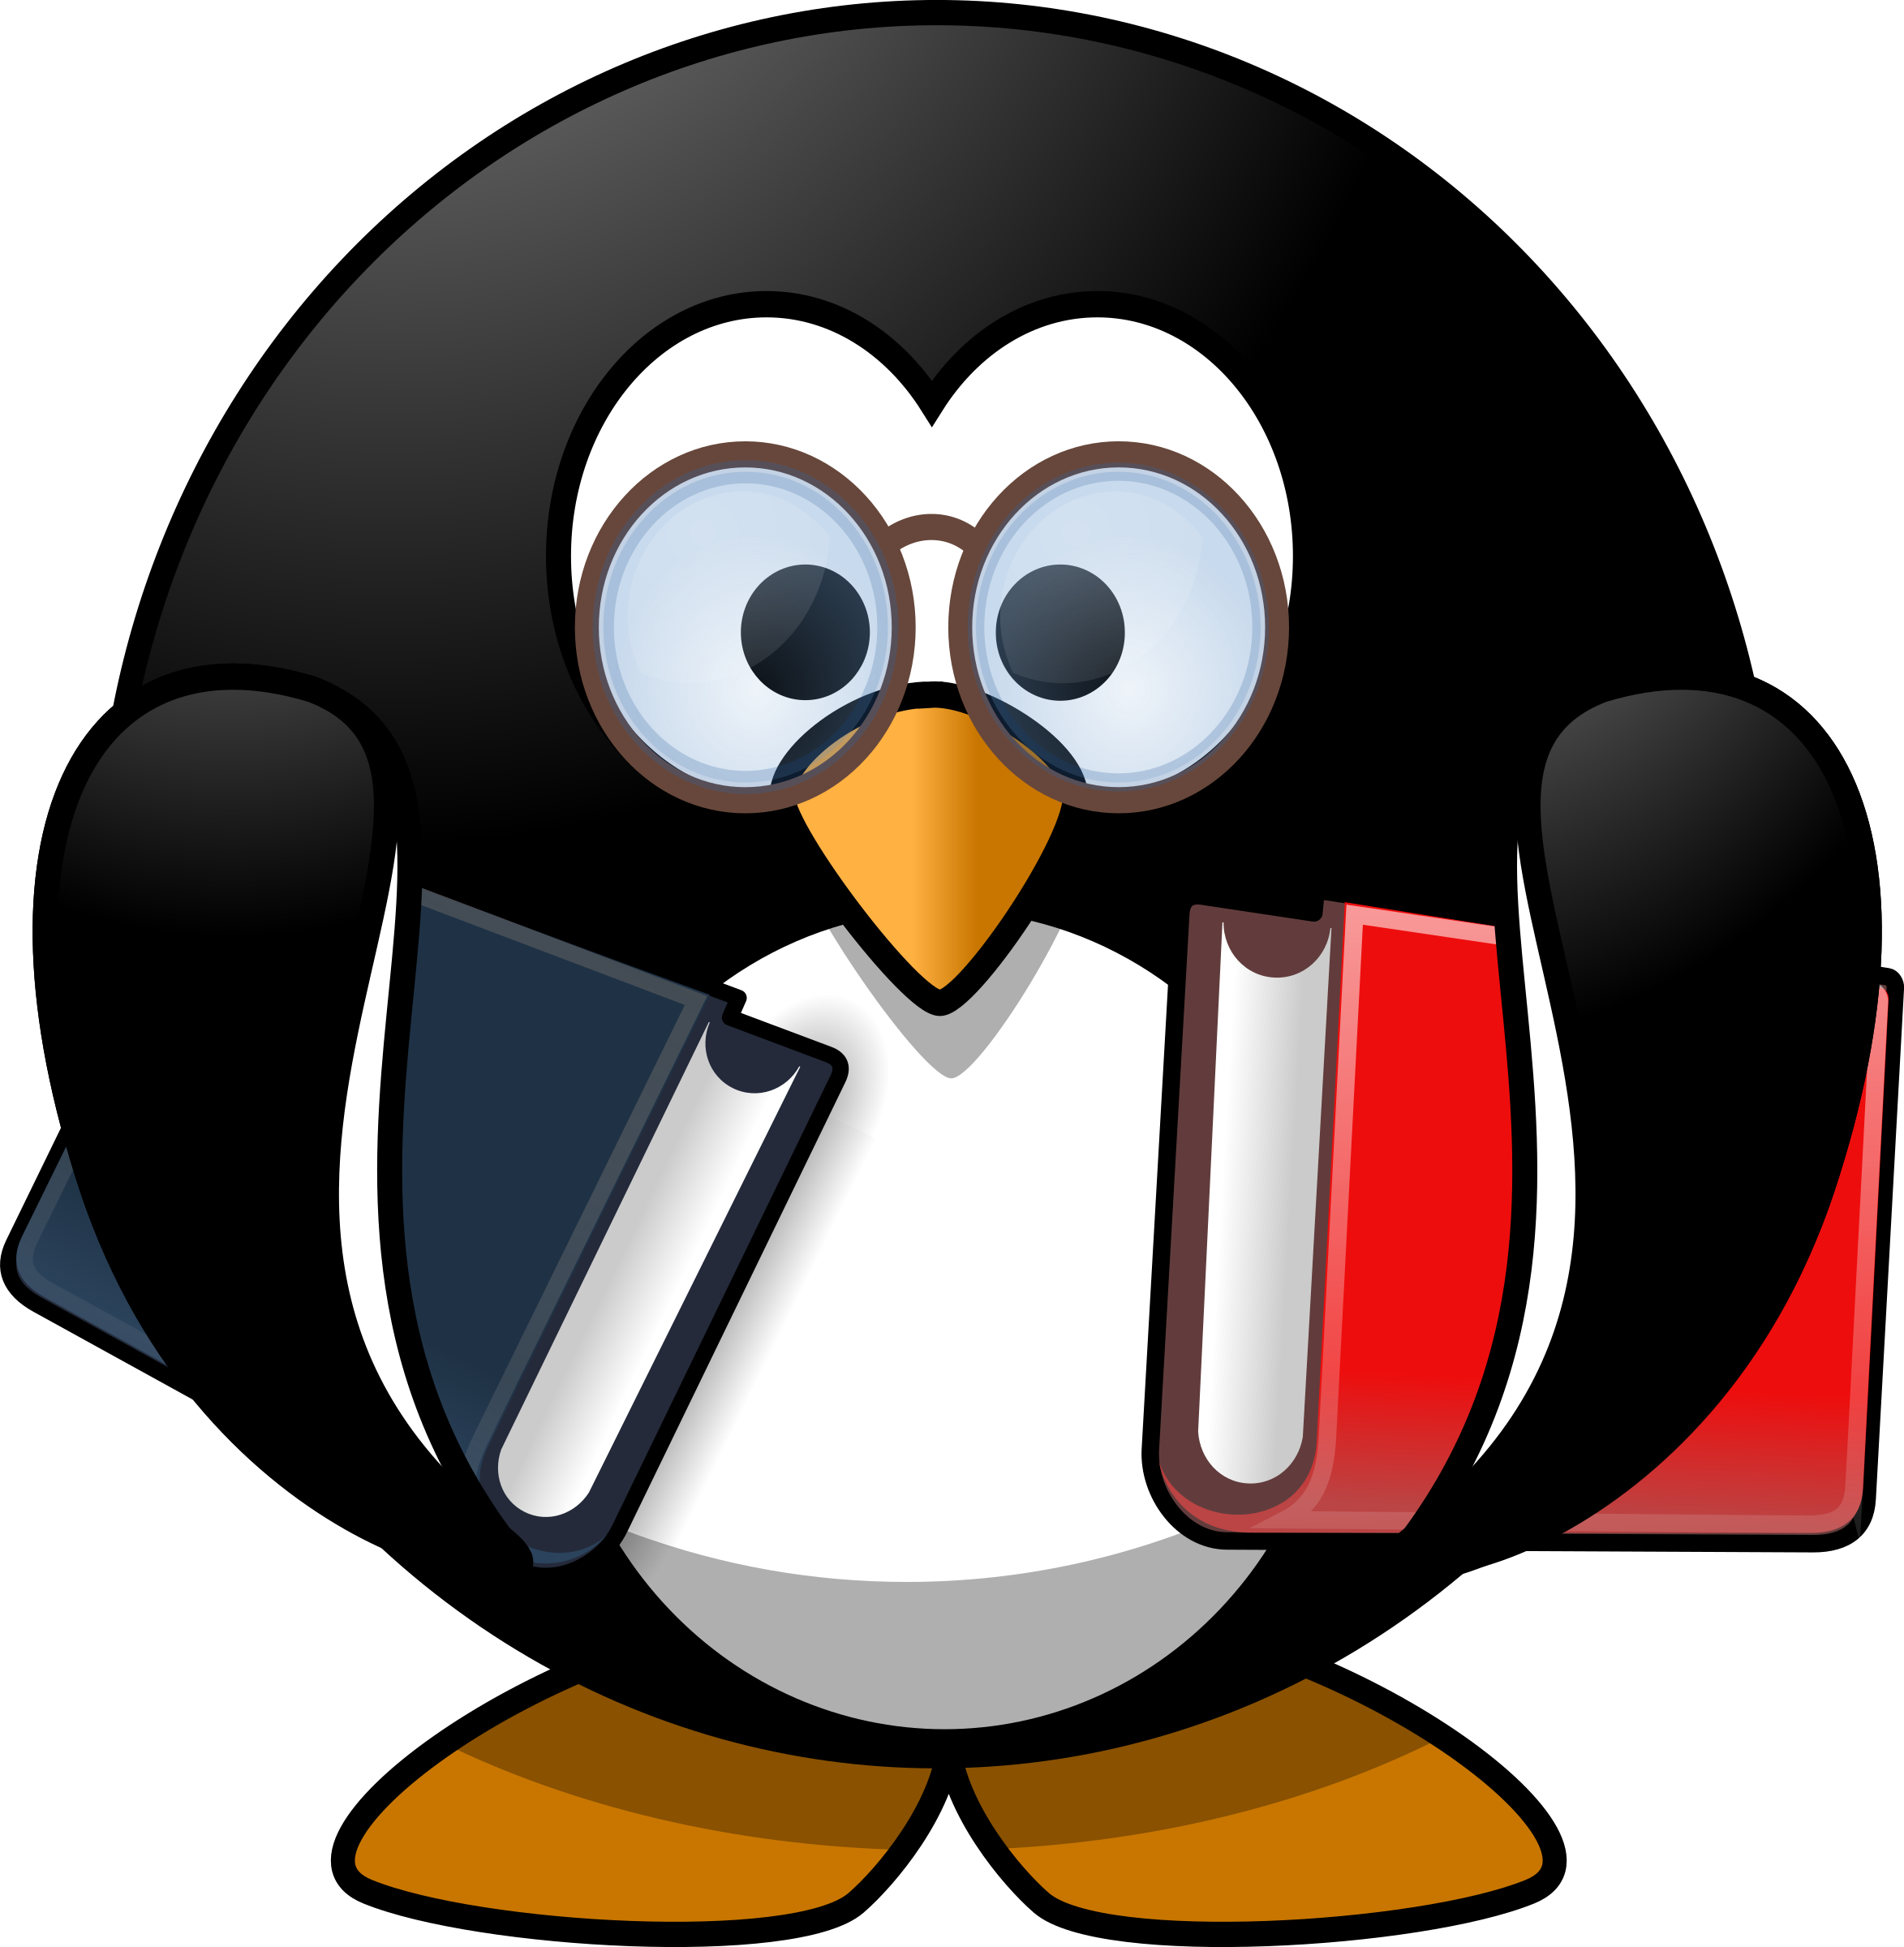 Bookworm penguin by Moini